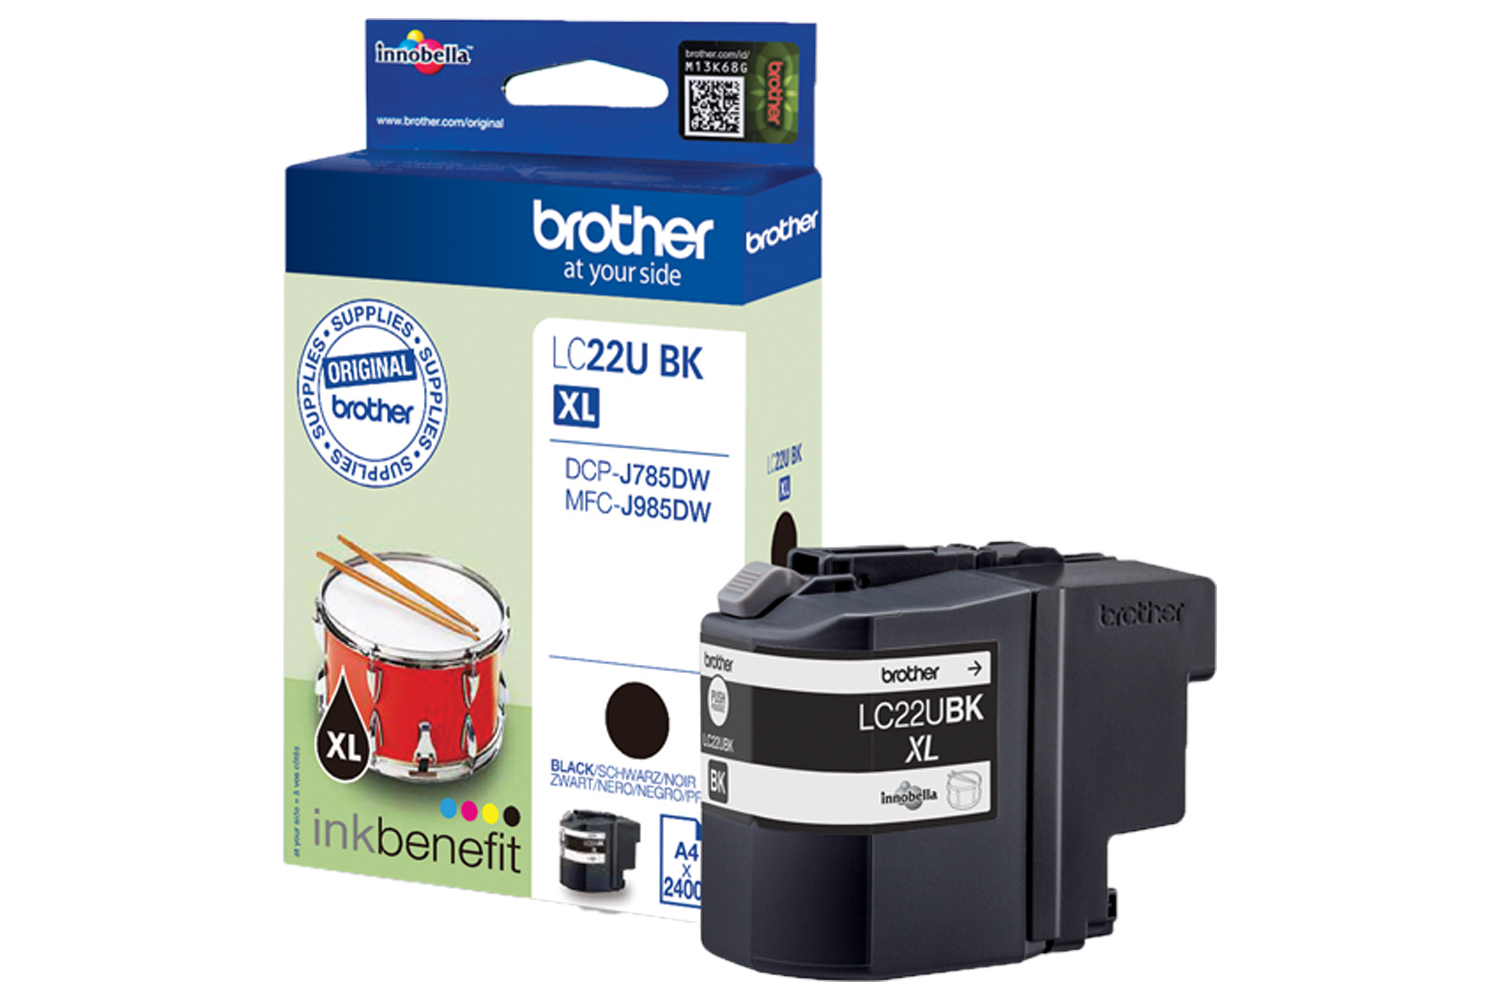 Brother MFC-J985DW Wireless Inkjet Printer | Ireland